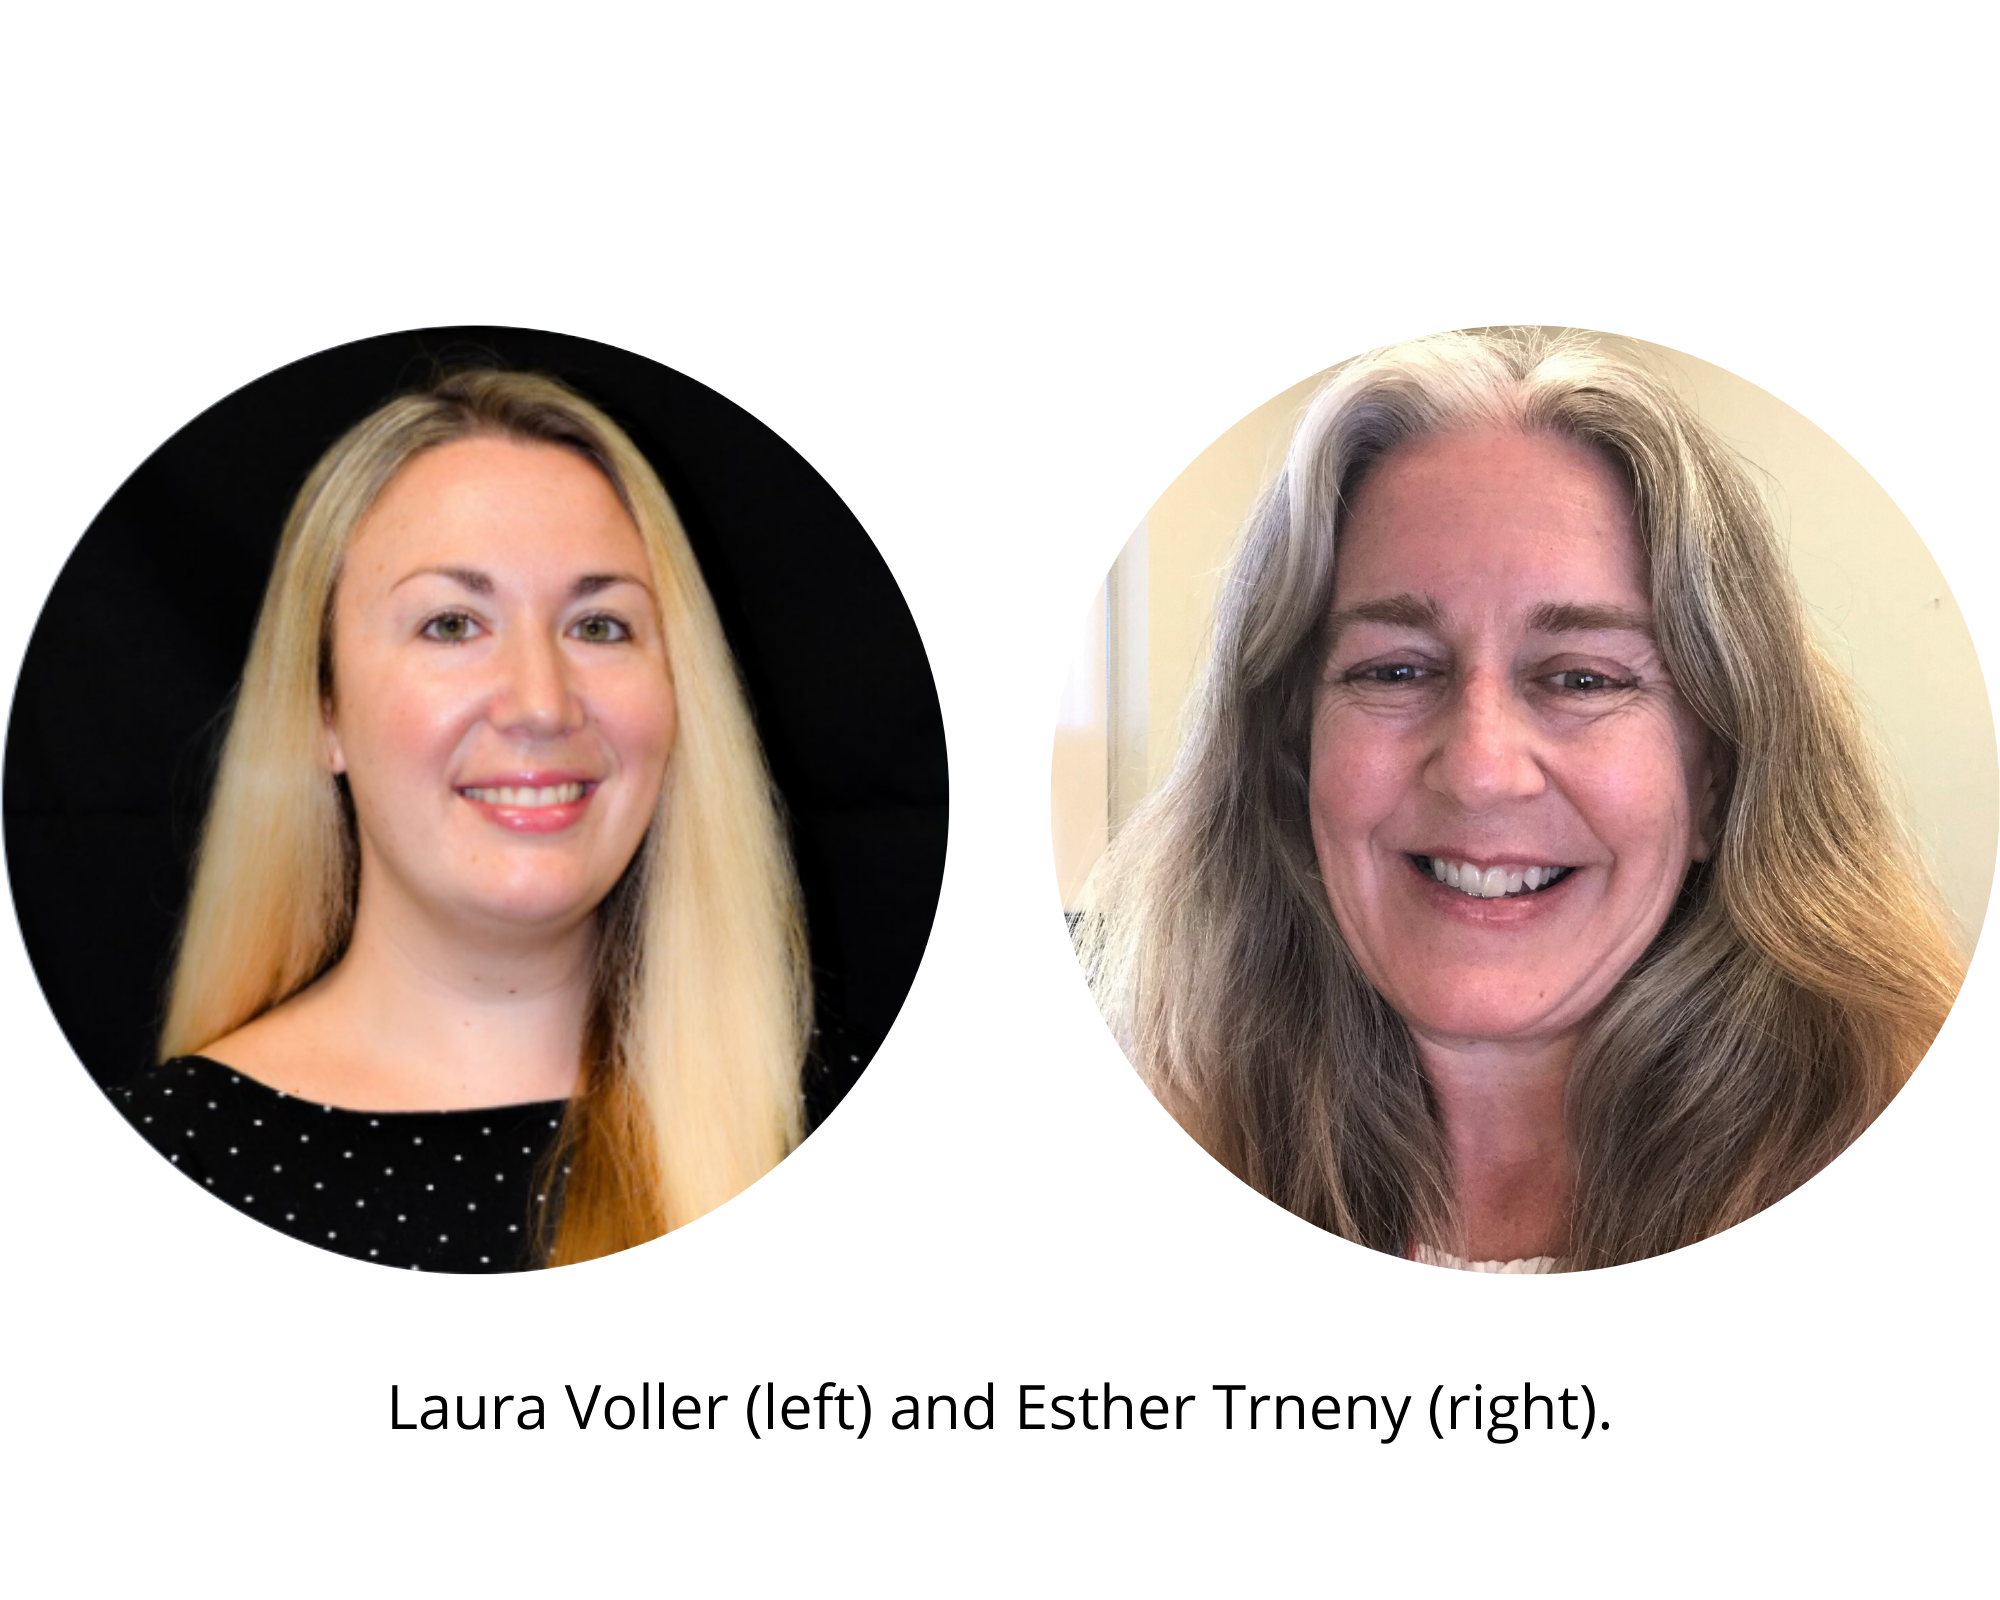 Laura Voller (left) and Esther Trneny (right).